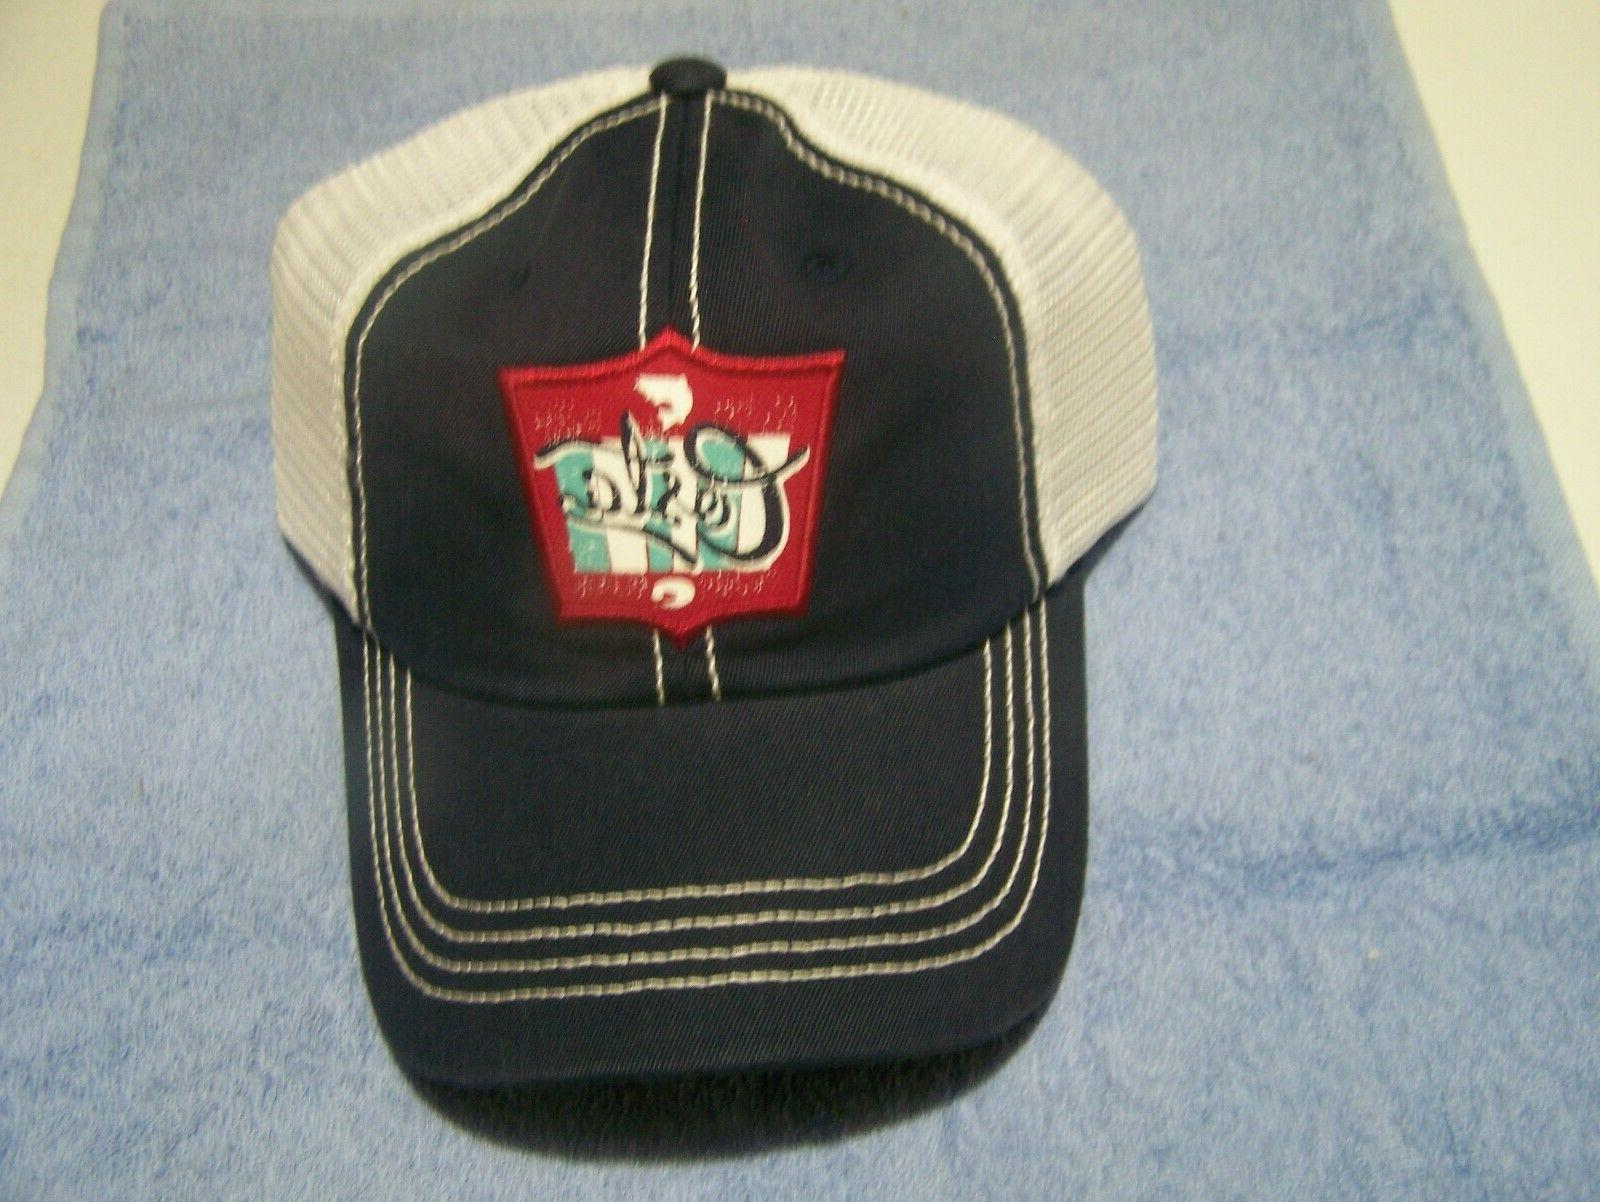 New Mar Trucker Hat Navy with White